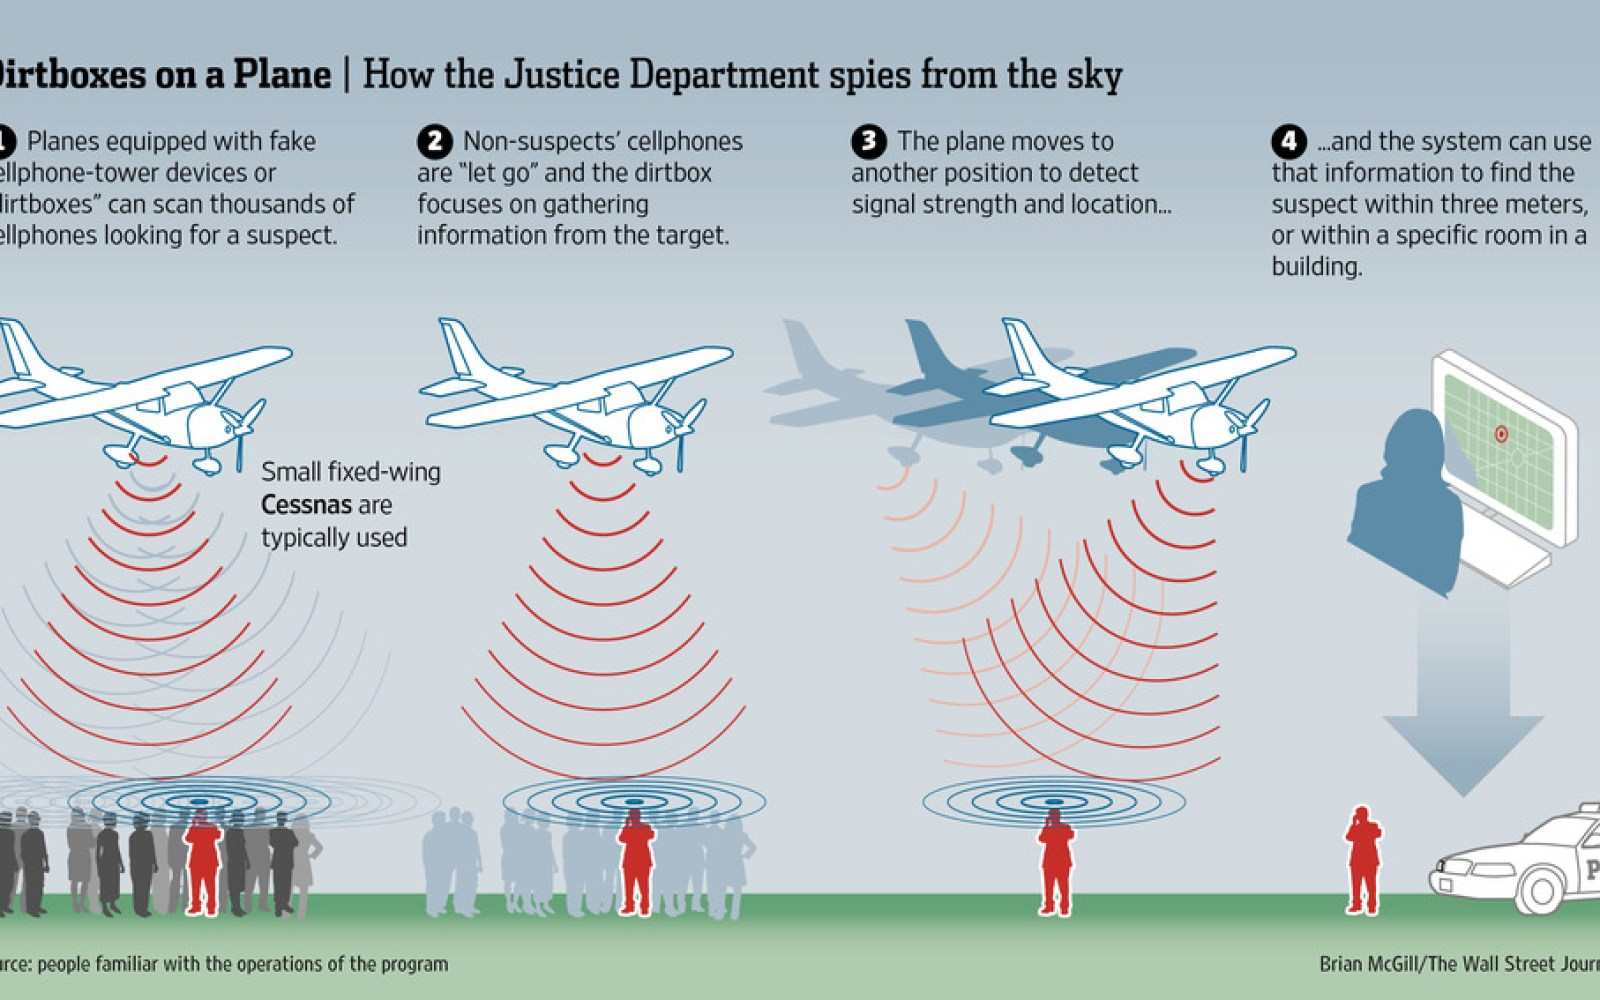 WSJ: Department of Justice uses fake cell towers on airplanes to capture data from mobile phones